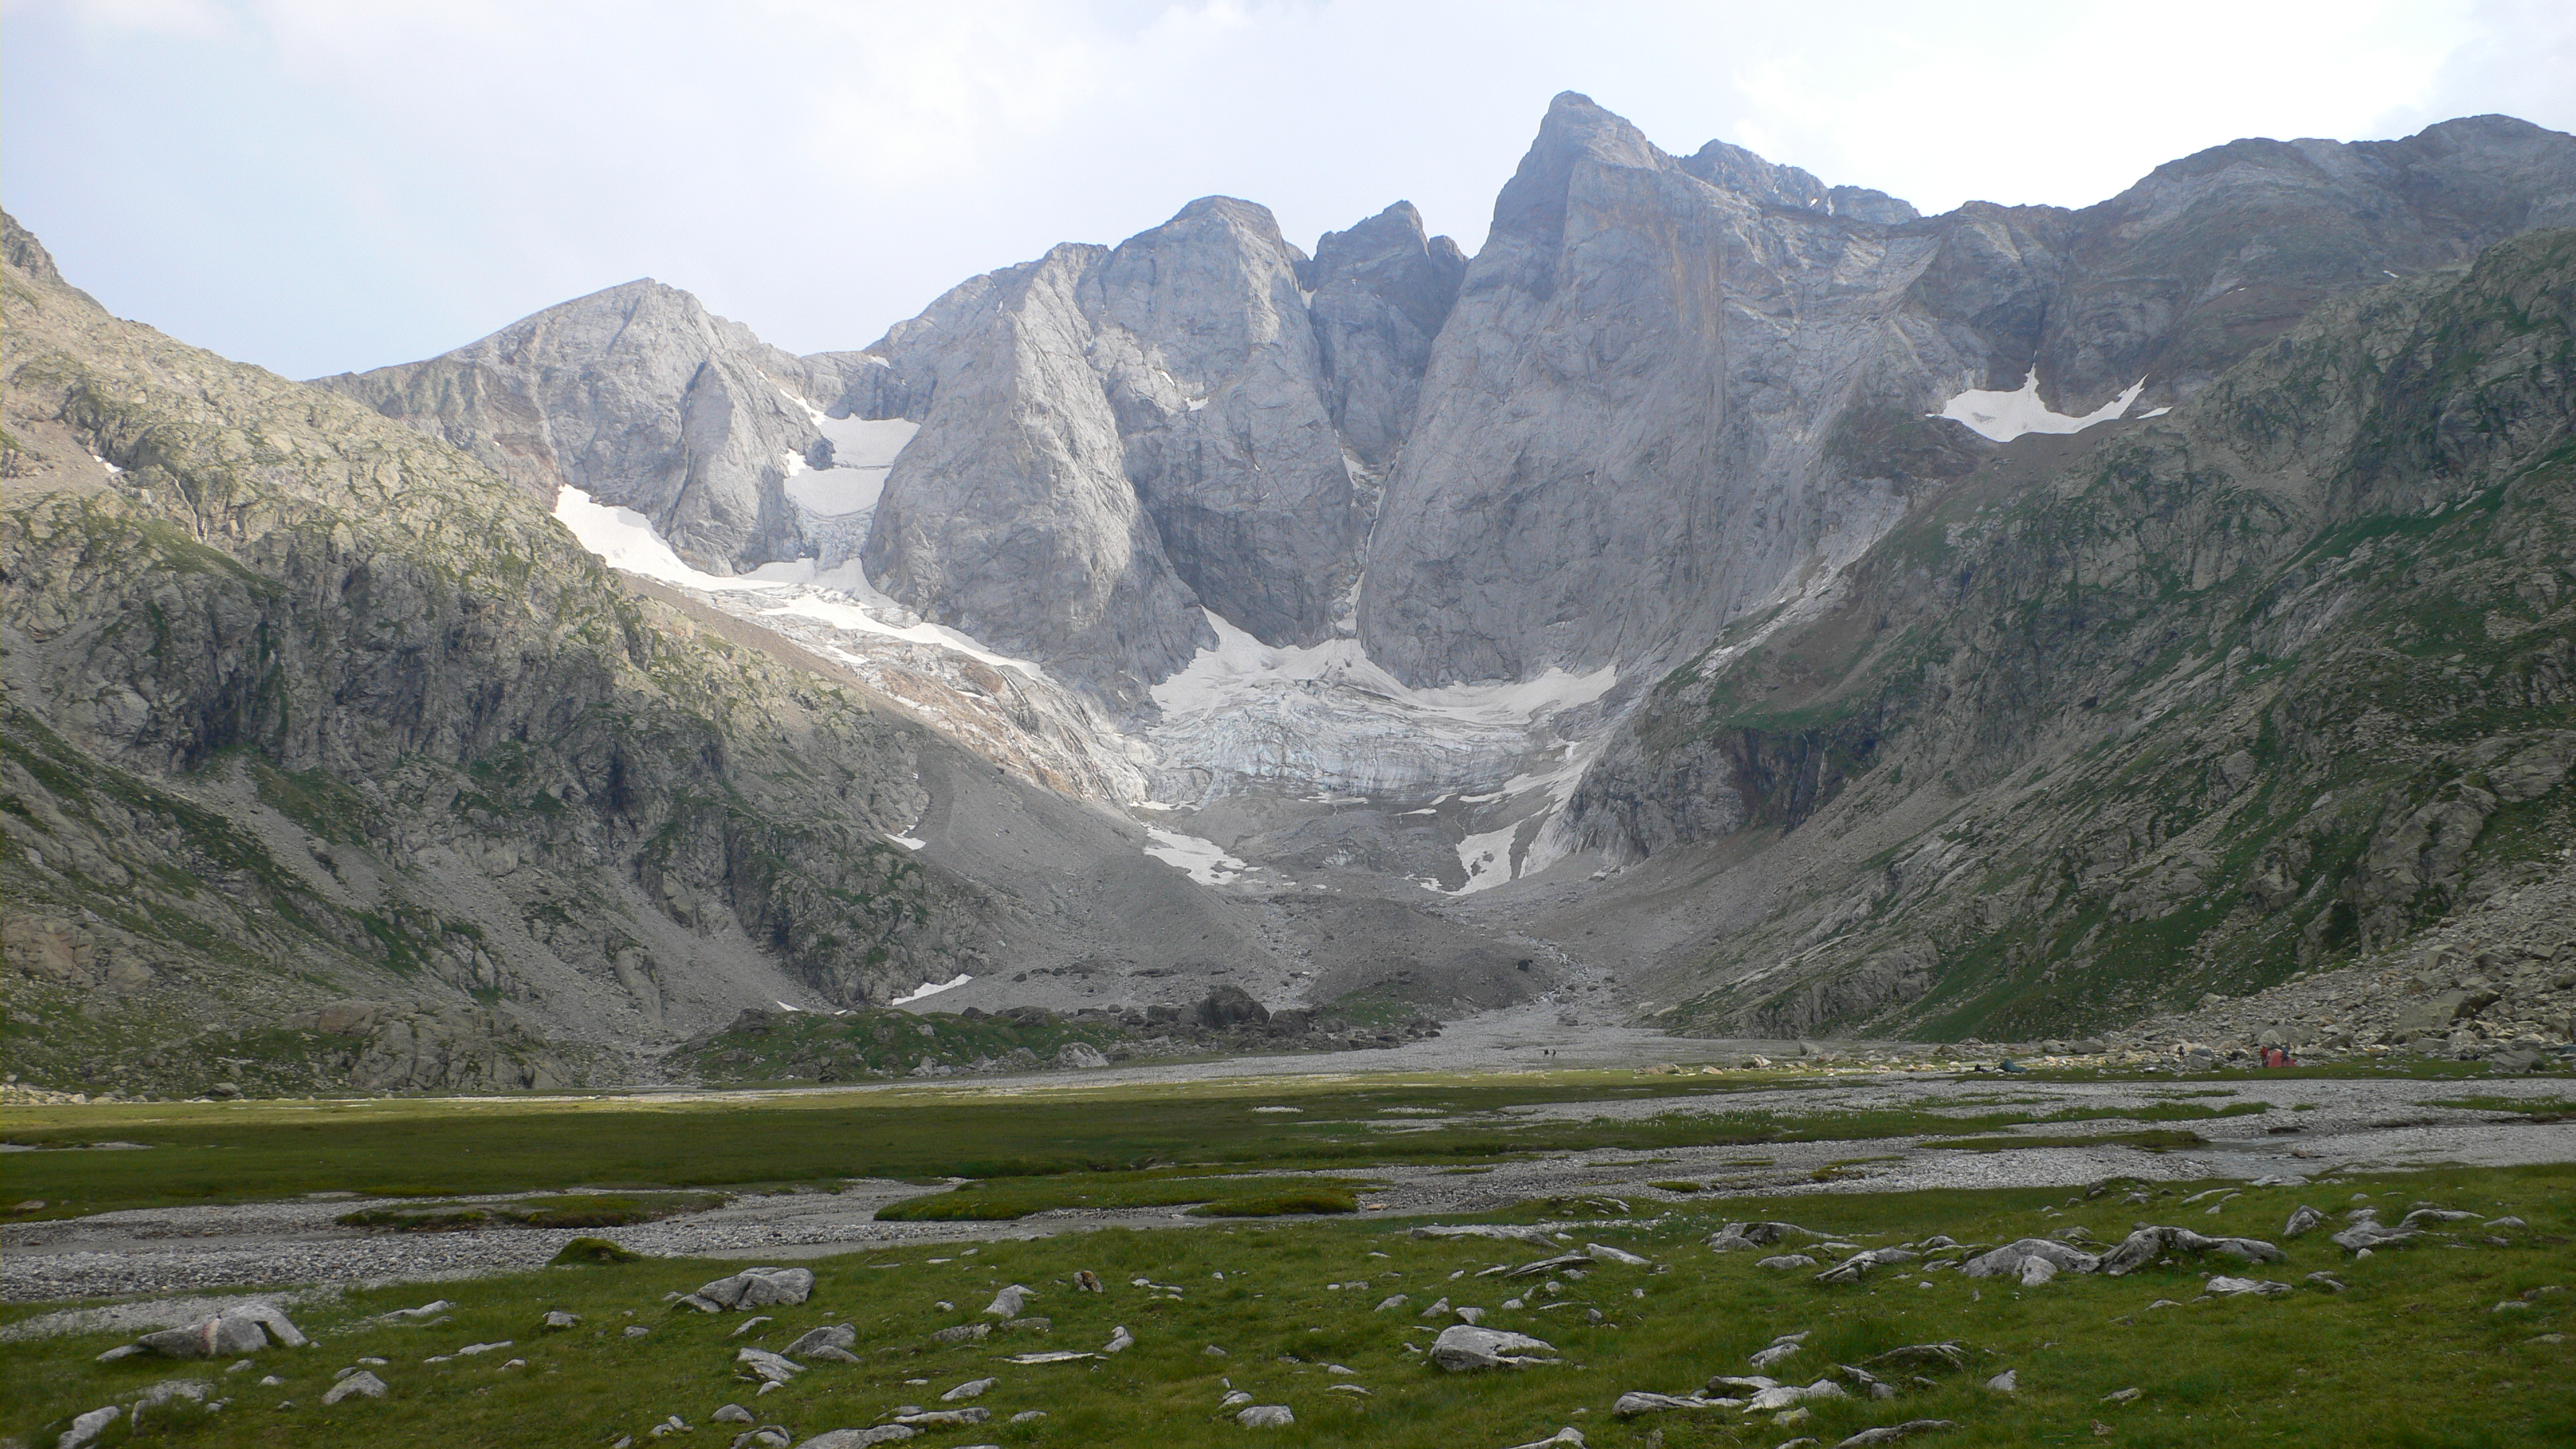 The north face of Vignemale